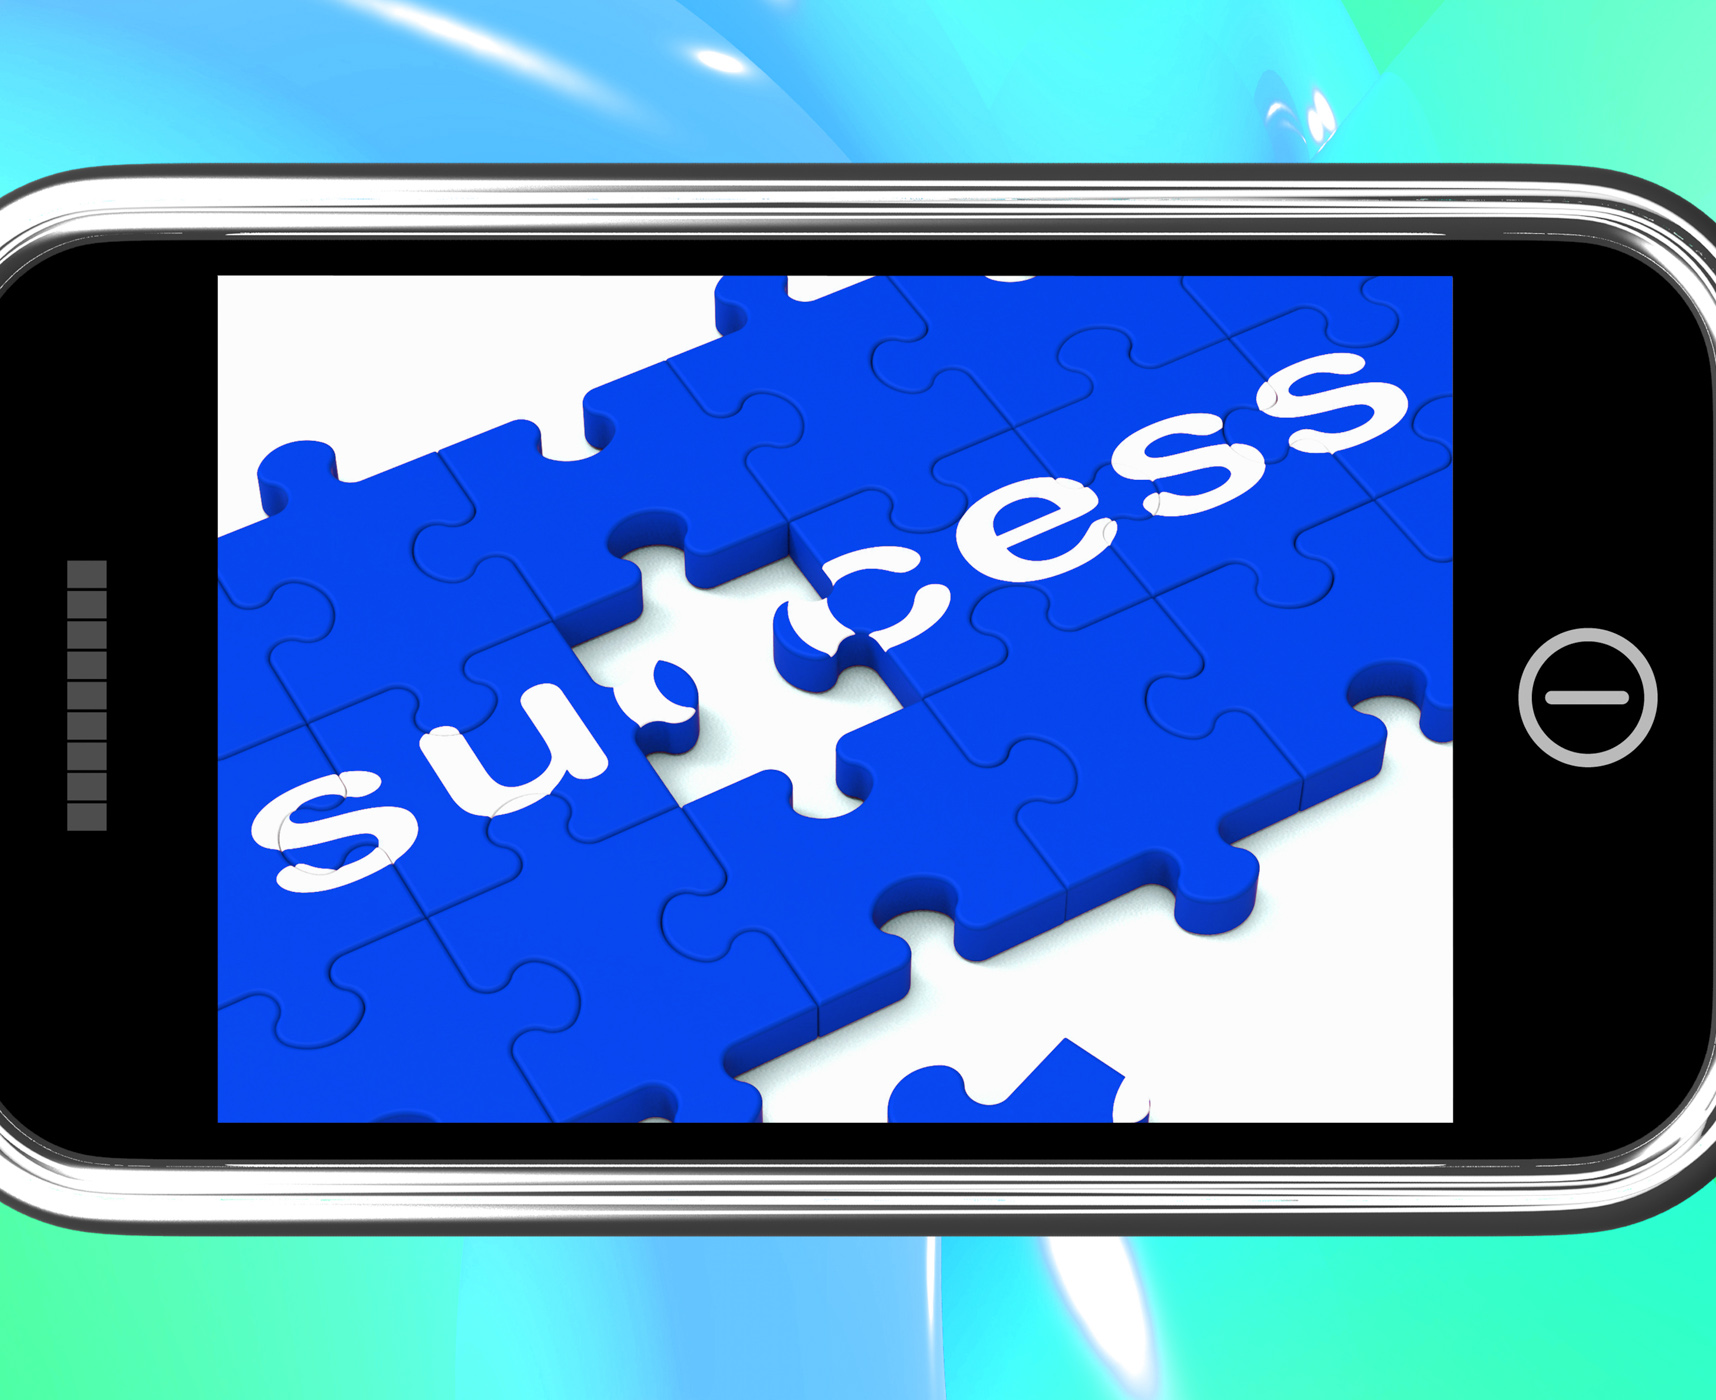 Success on smartphone shows successful solutions photo